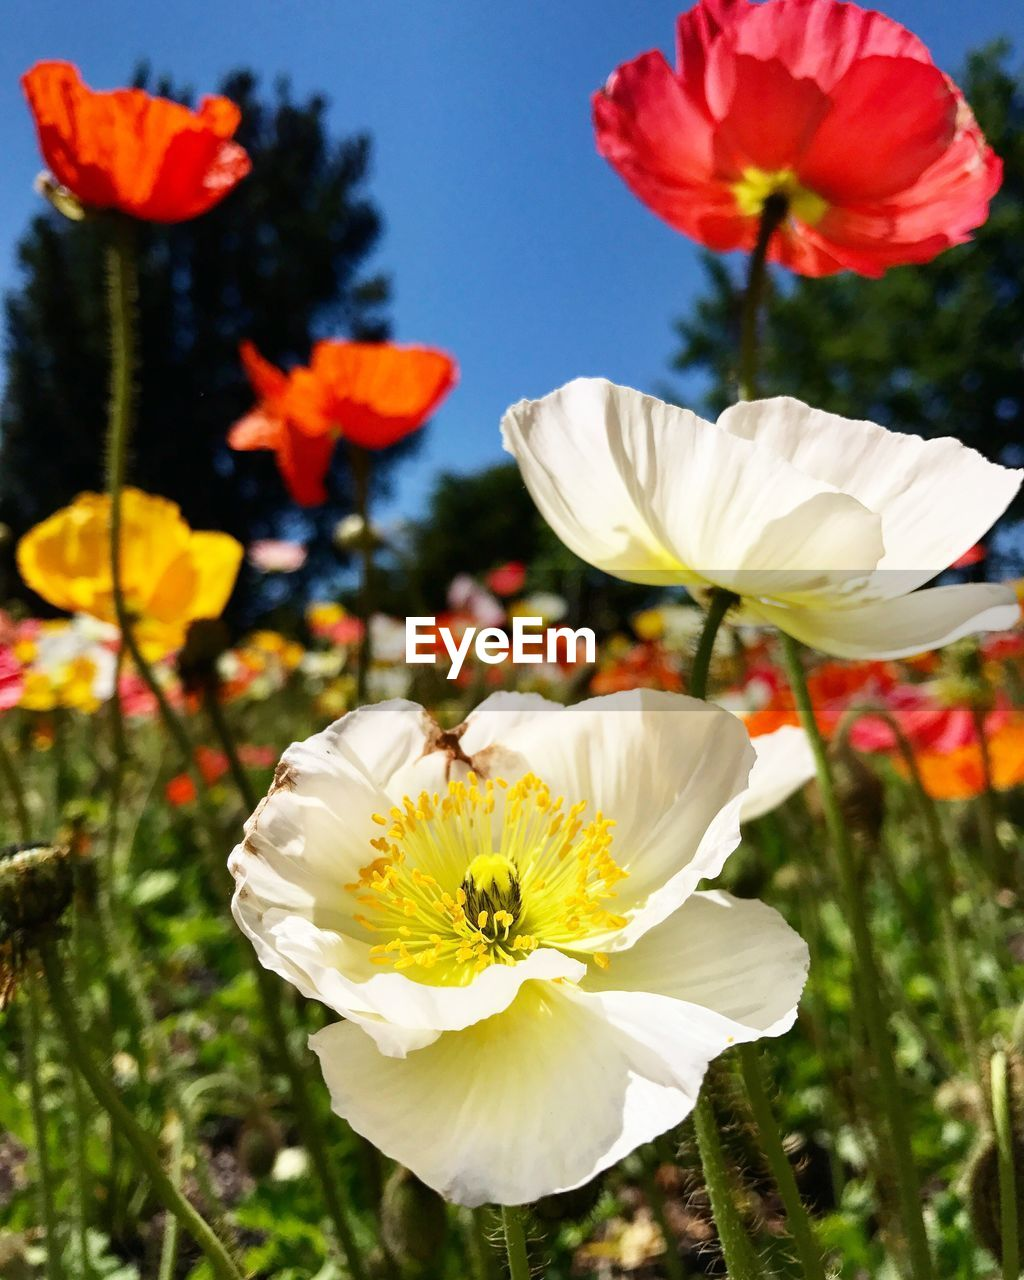 flower, petal, fragility, flower head, beauty in nature, nature, freshness, growth, white color, plant, blooming, focus on foreground, no people, day, outdoors, close-up, pollen, stamen, cosmos flower